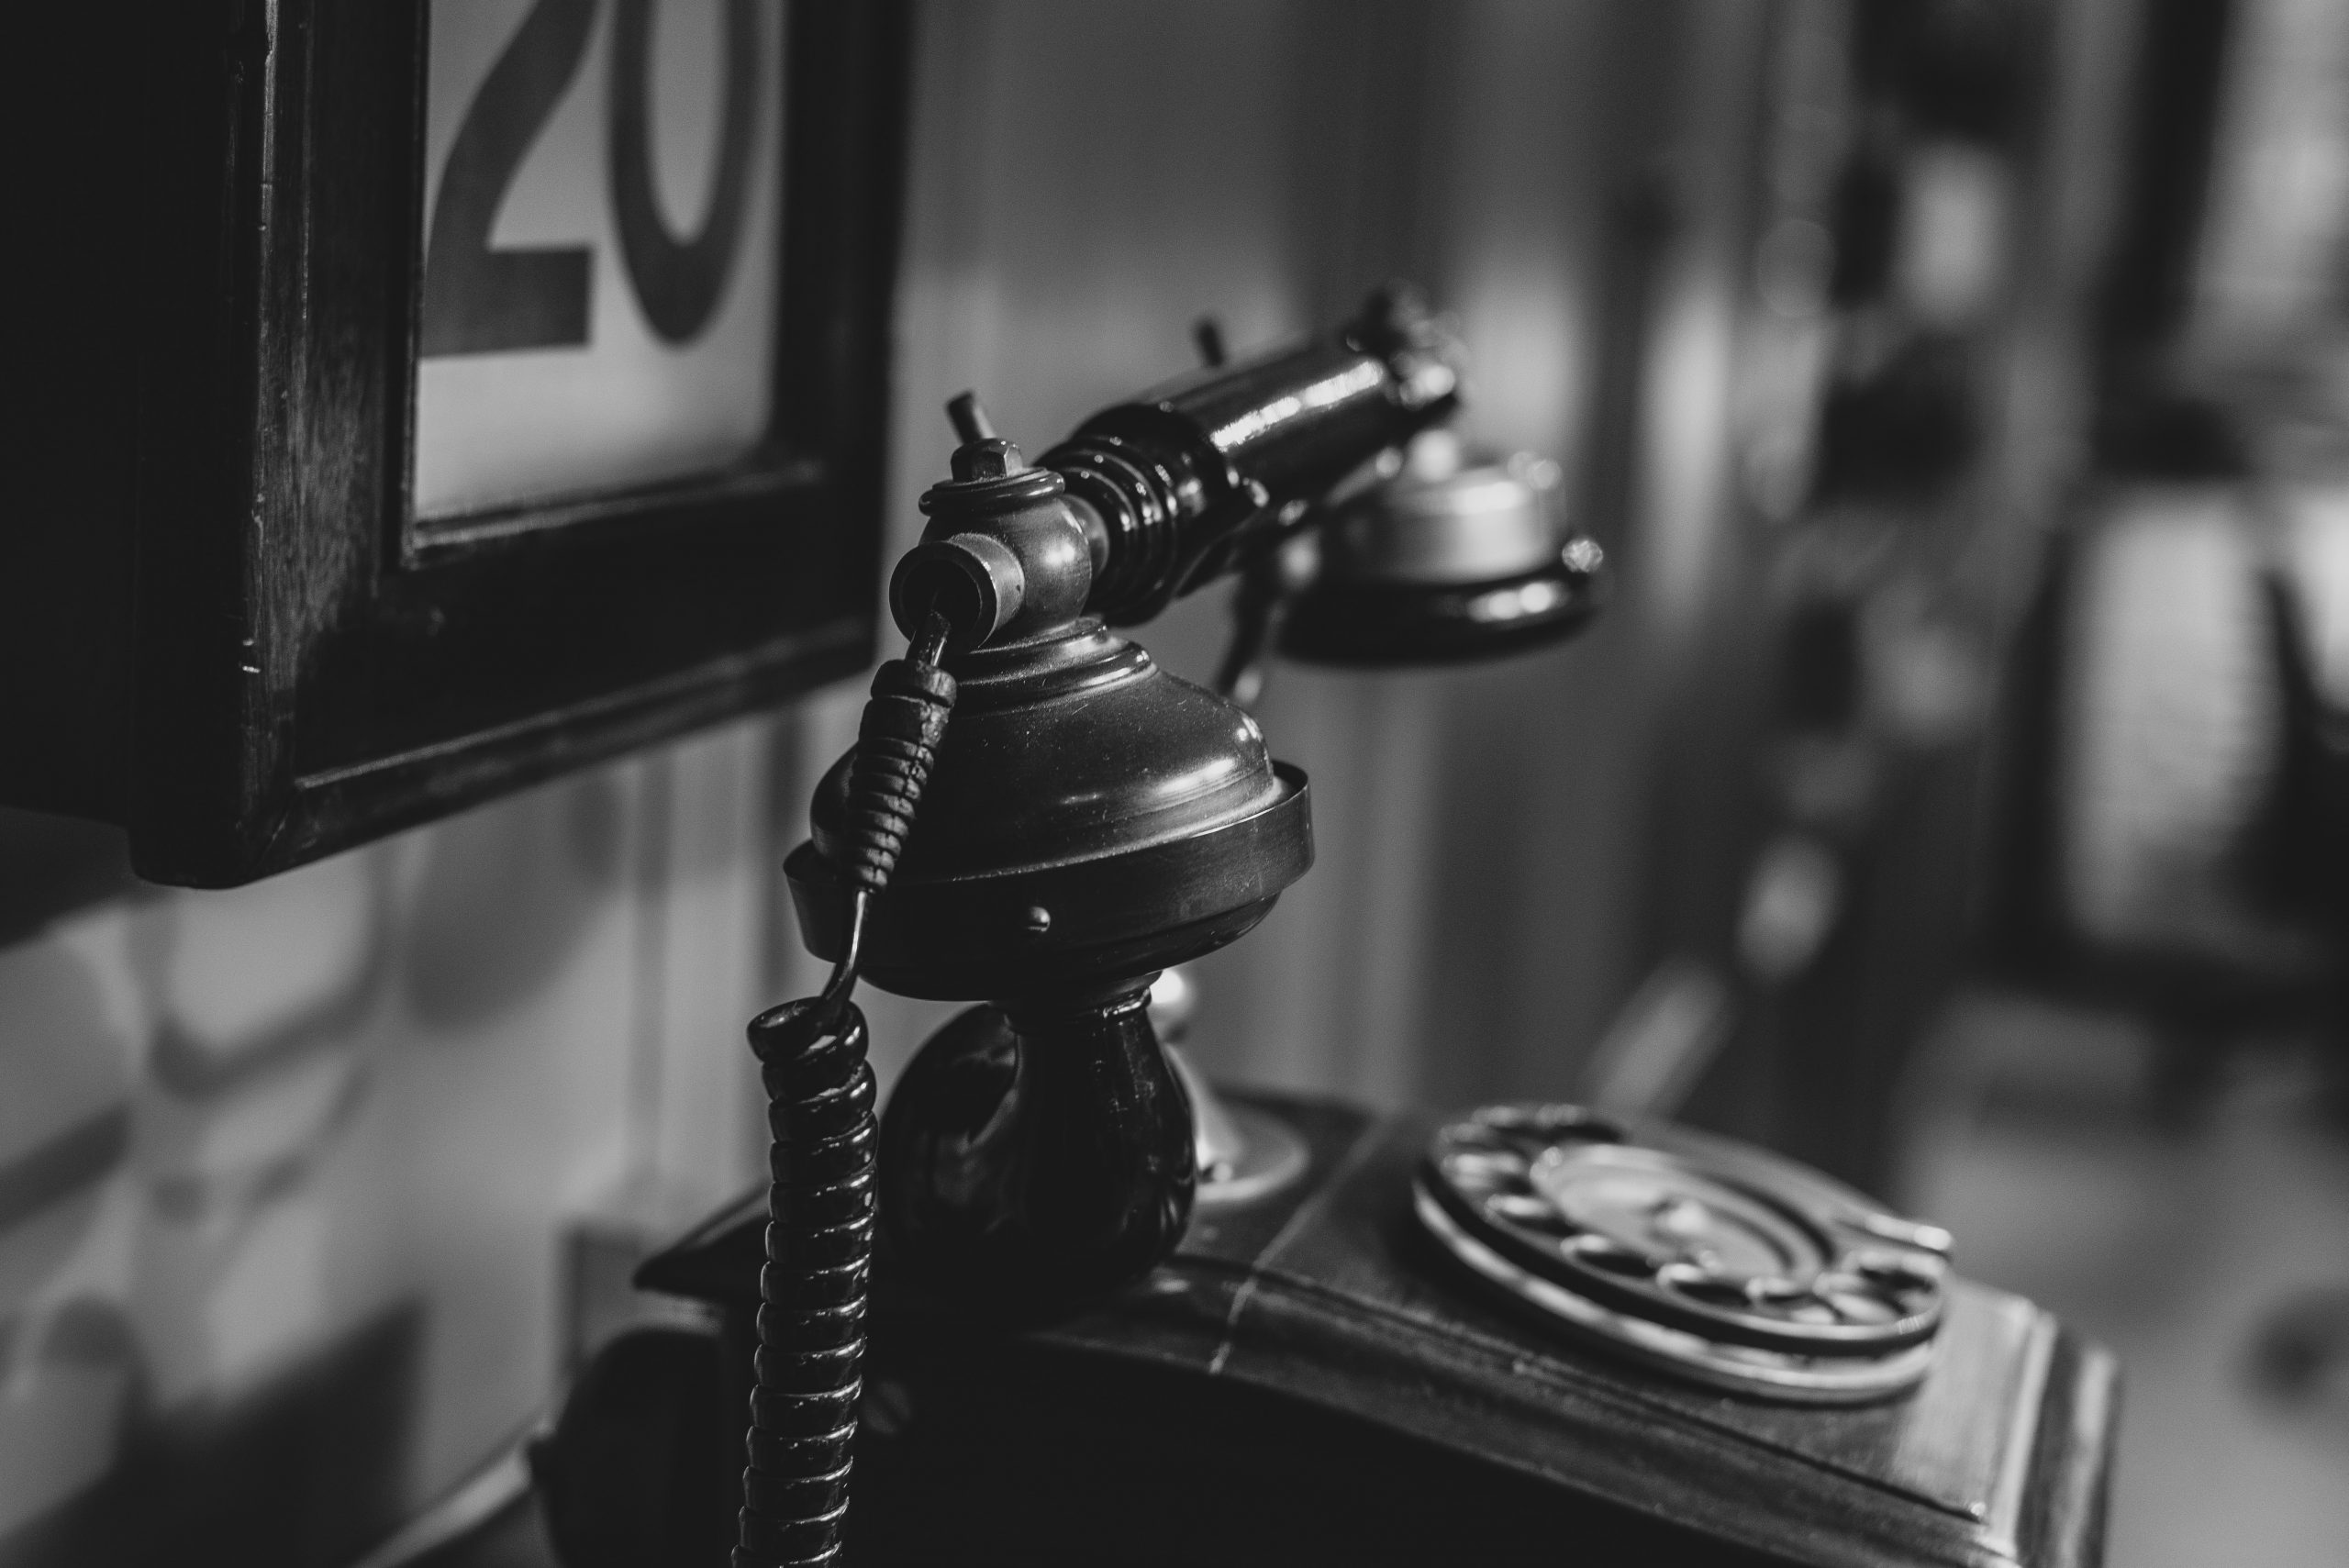 dusty old telephone, waiting in the shadows to again be relevant